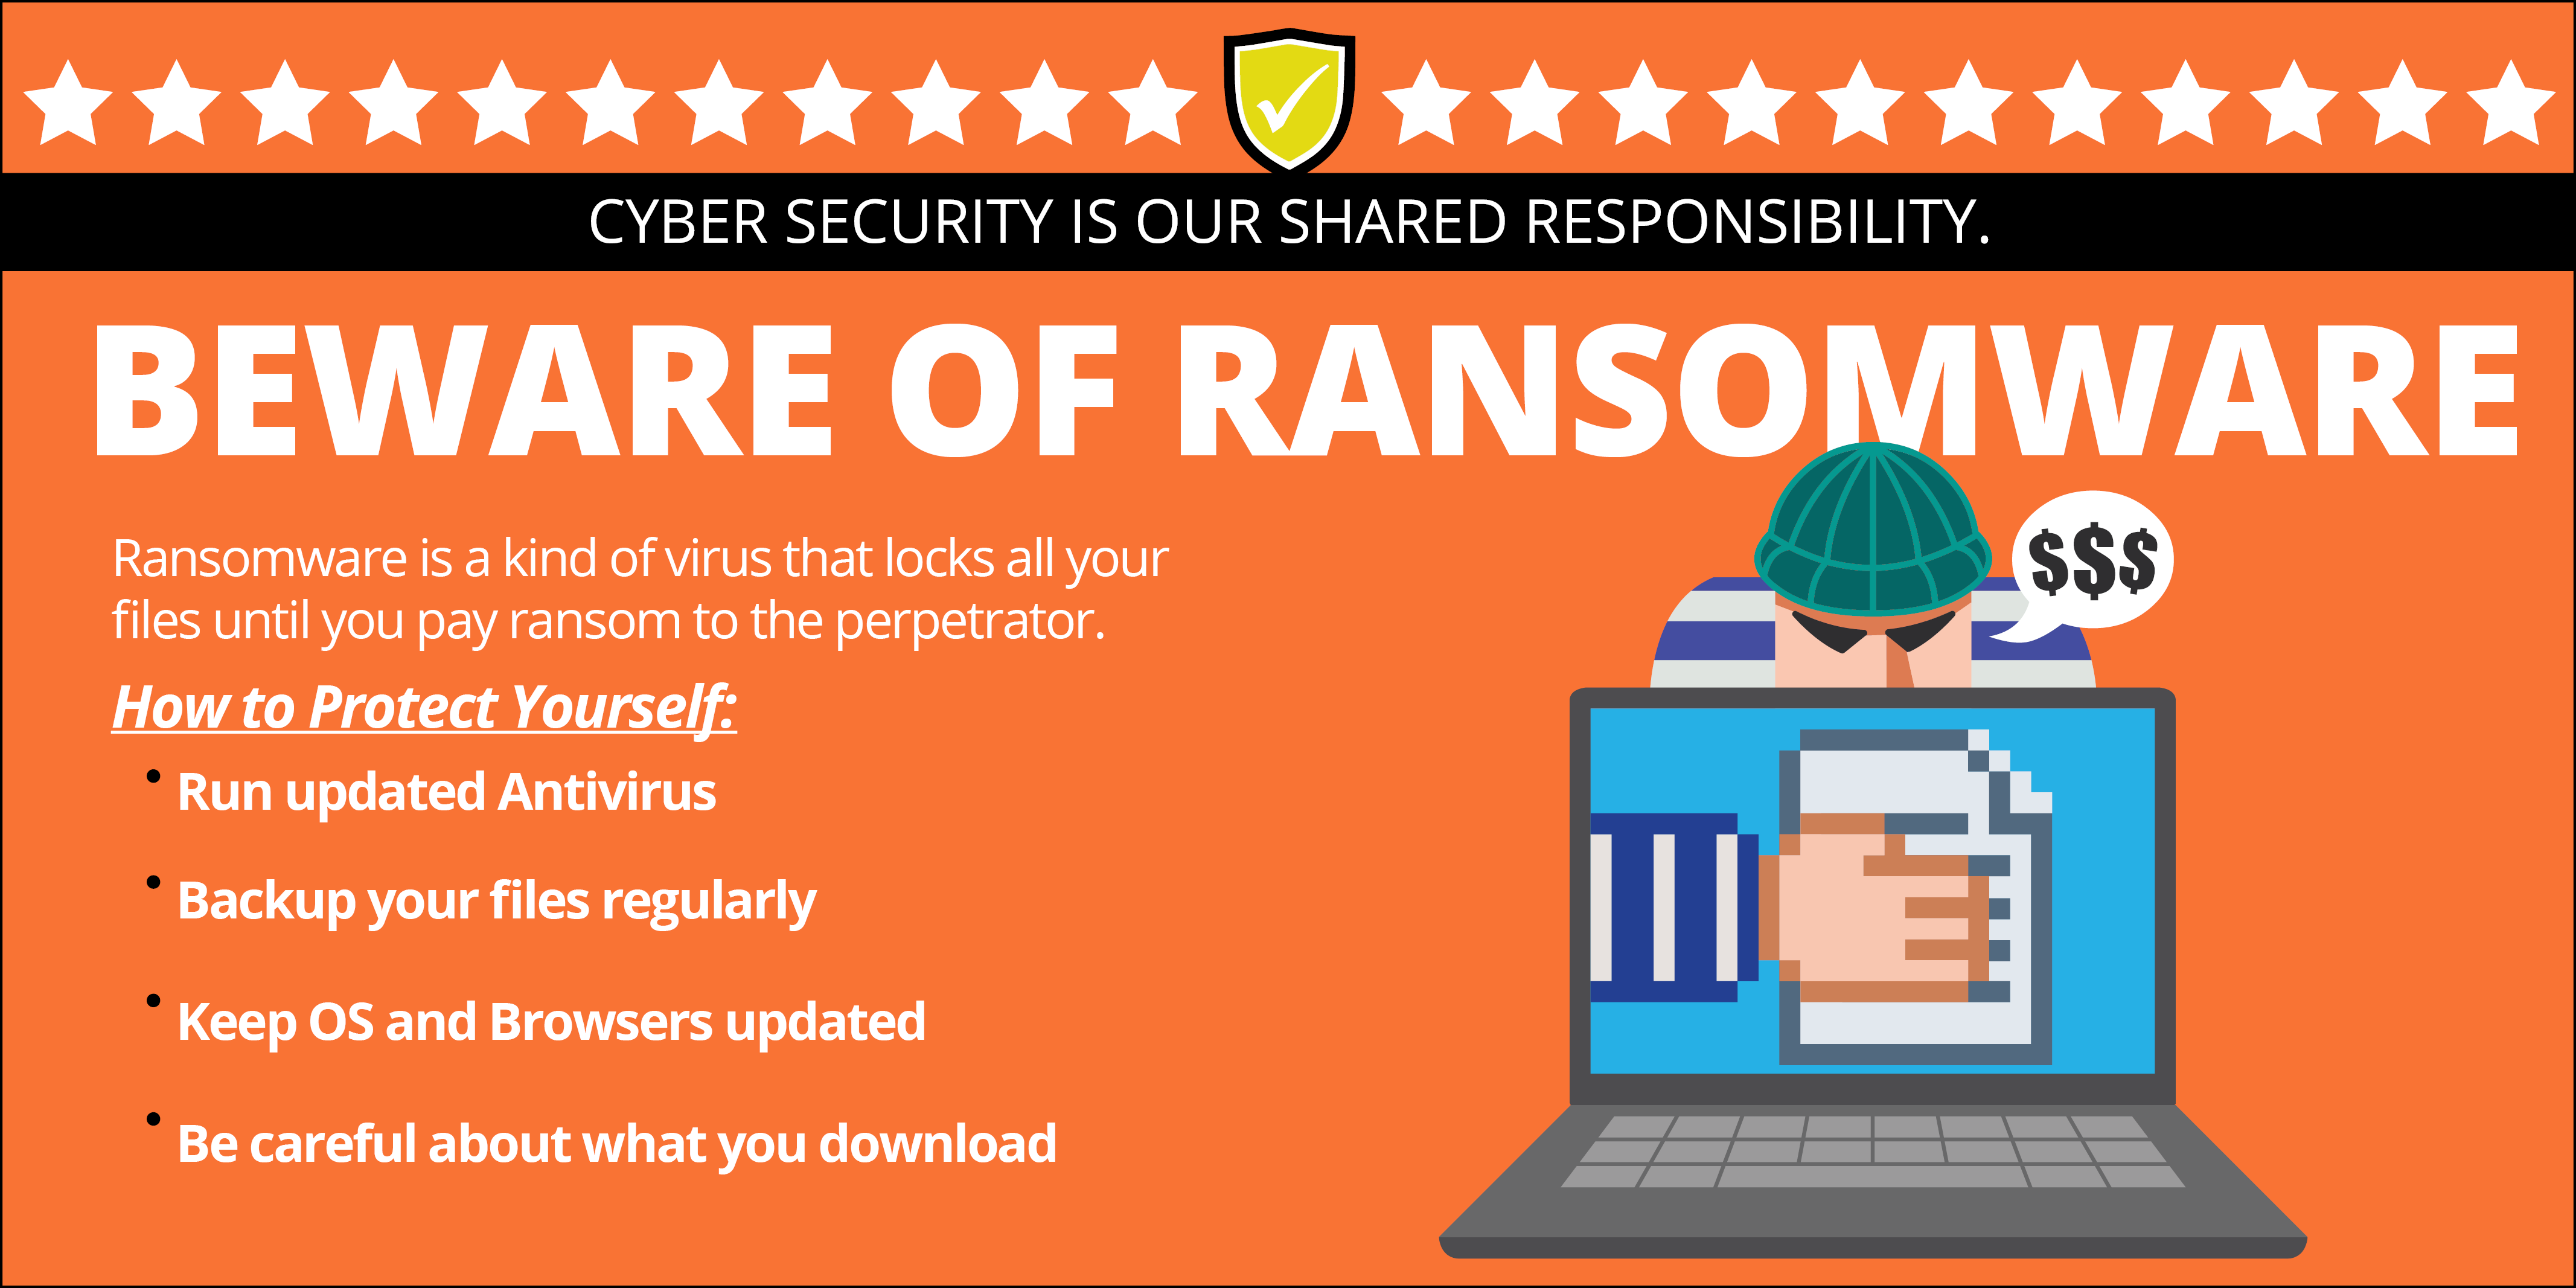 Beware of Ransomware, a virus that locks your files until you pay a ransom. Run antivirus, backup your files, keep your computer updated, and be careful what you download.